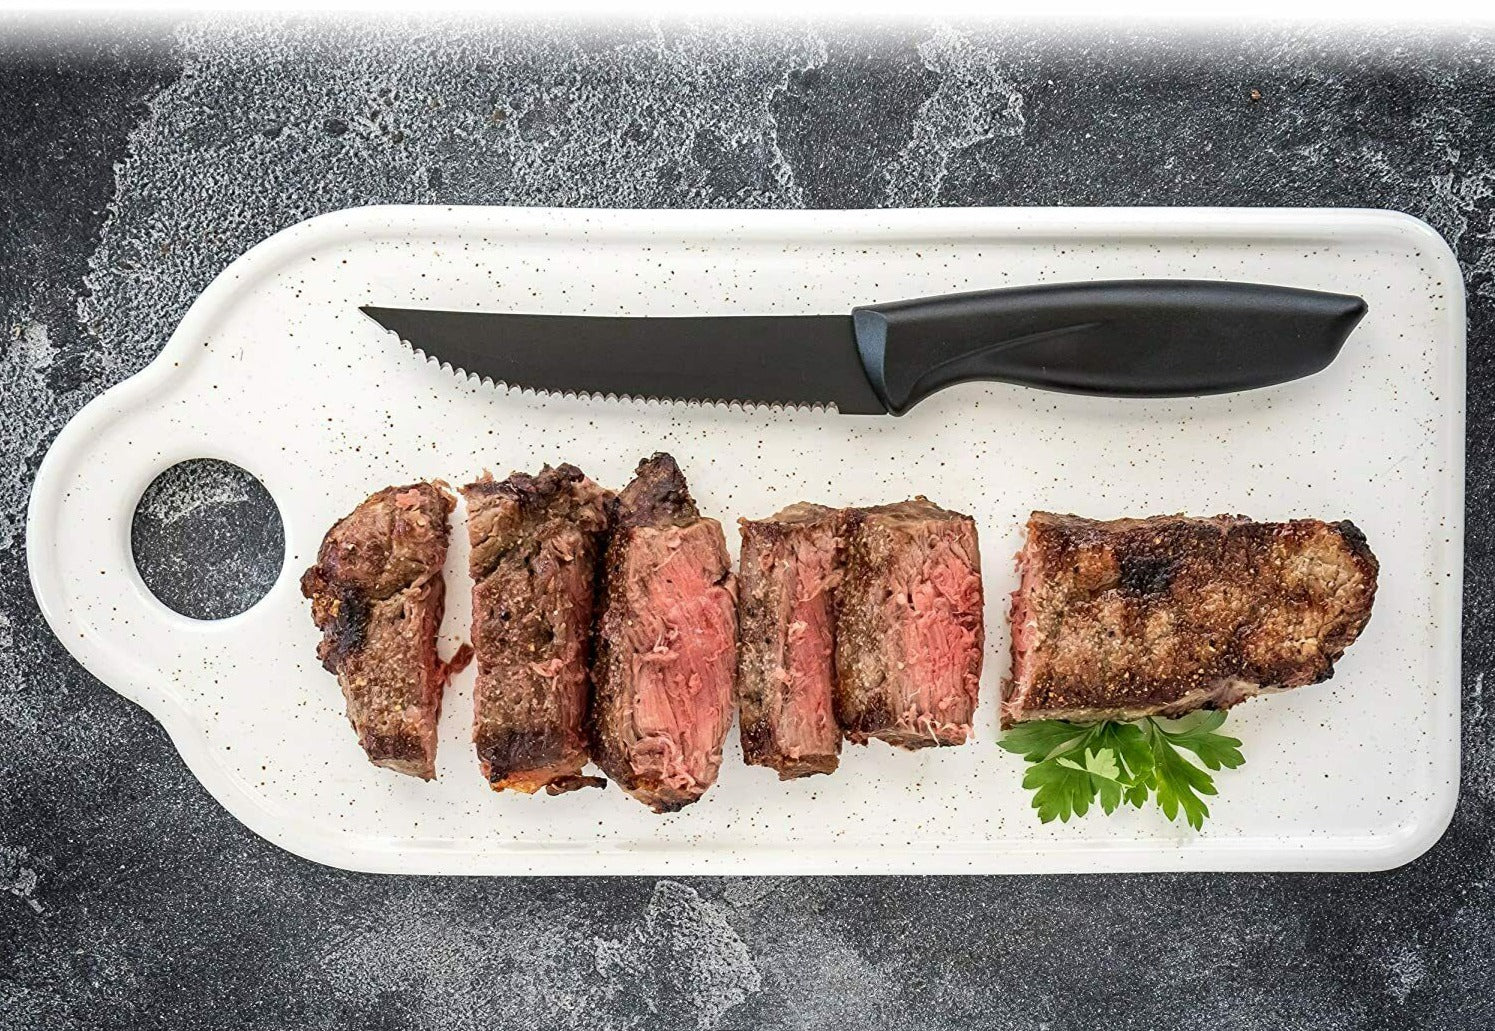 8-Piece Premium Steak Knife Set